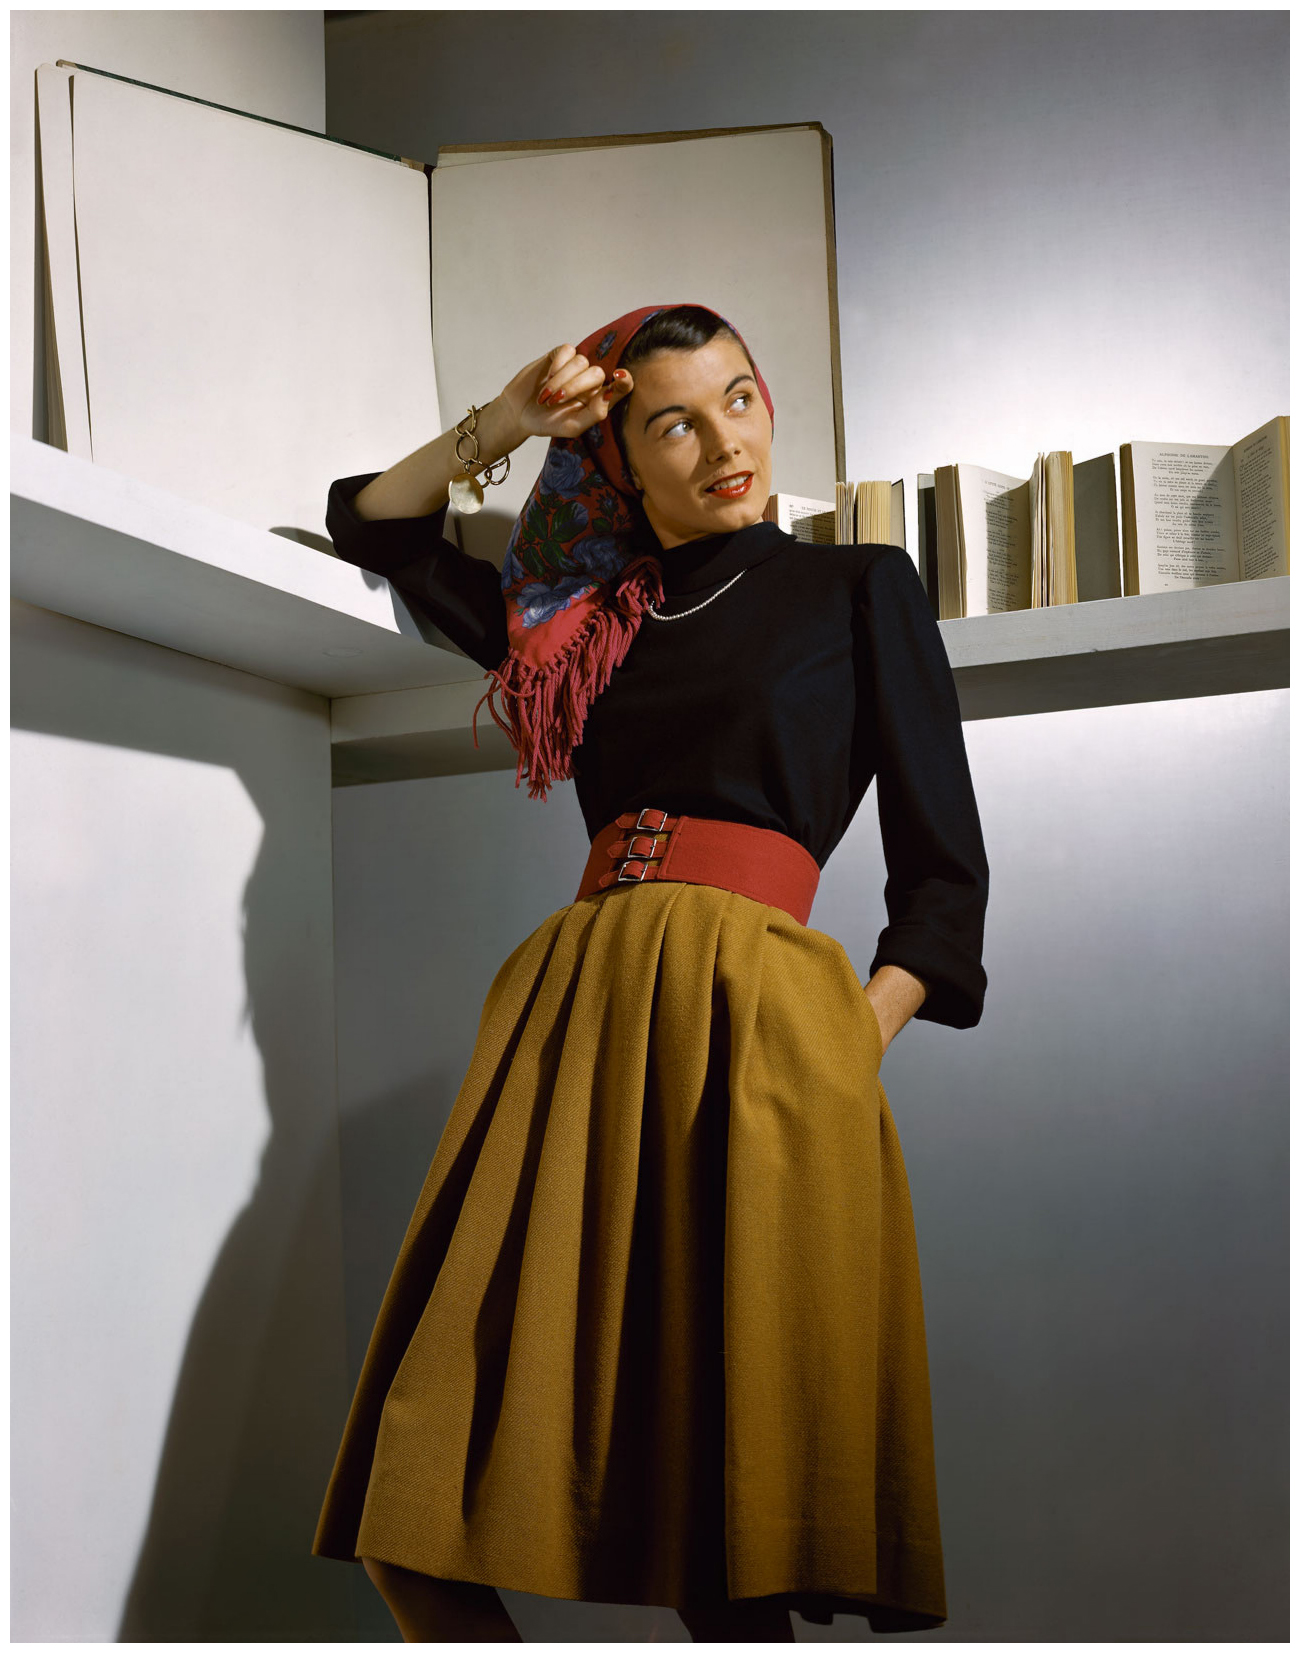 a-vogue-model-photographed-in-a-camel-coloured-wool-skirt-accessorised-with-a-wide-red-belt-a-fringed-scarf-and-pearls-1941-horst-p-horst-b